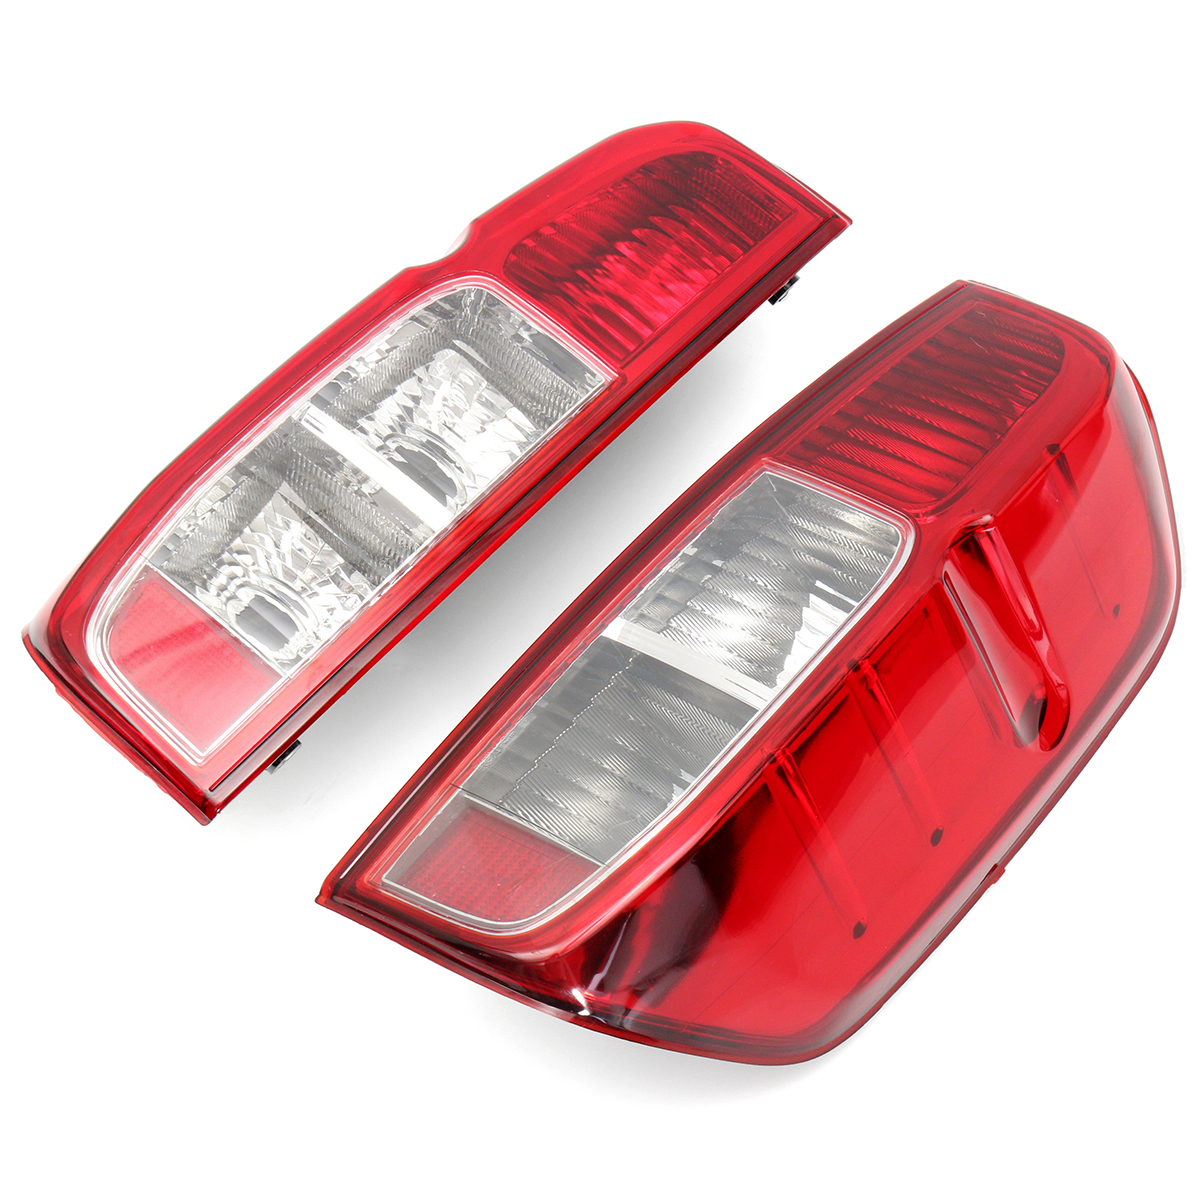 2Pcs LEFT/RIGHT Rear Tail Light Driver Passenger Side Lamp For Nissan NAVARA D40 2005-2015 1 pc outer rear tail light lamp taillamp taillight rh right side gr1a 51 170 for mazda 6 2005 2010 gg page 7